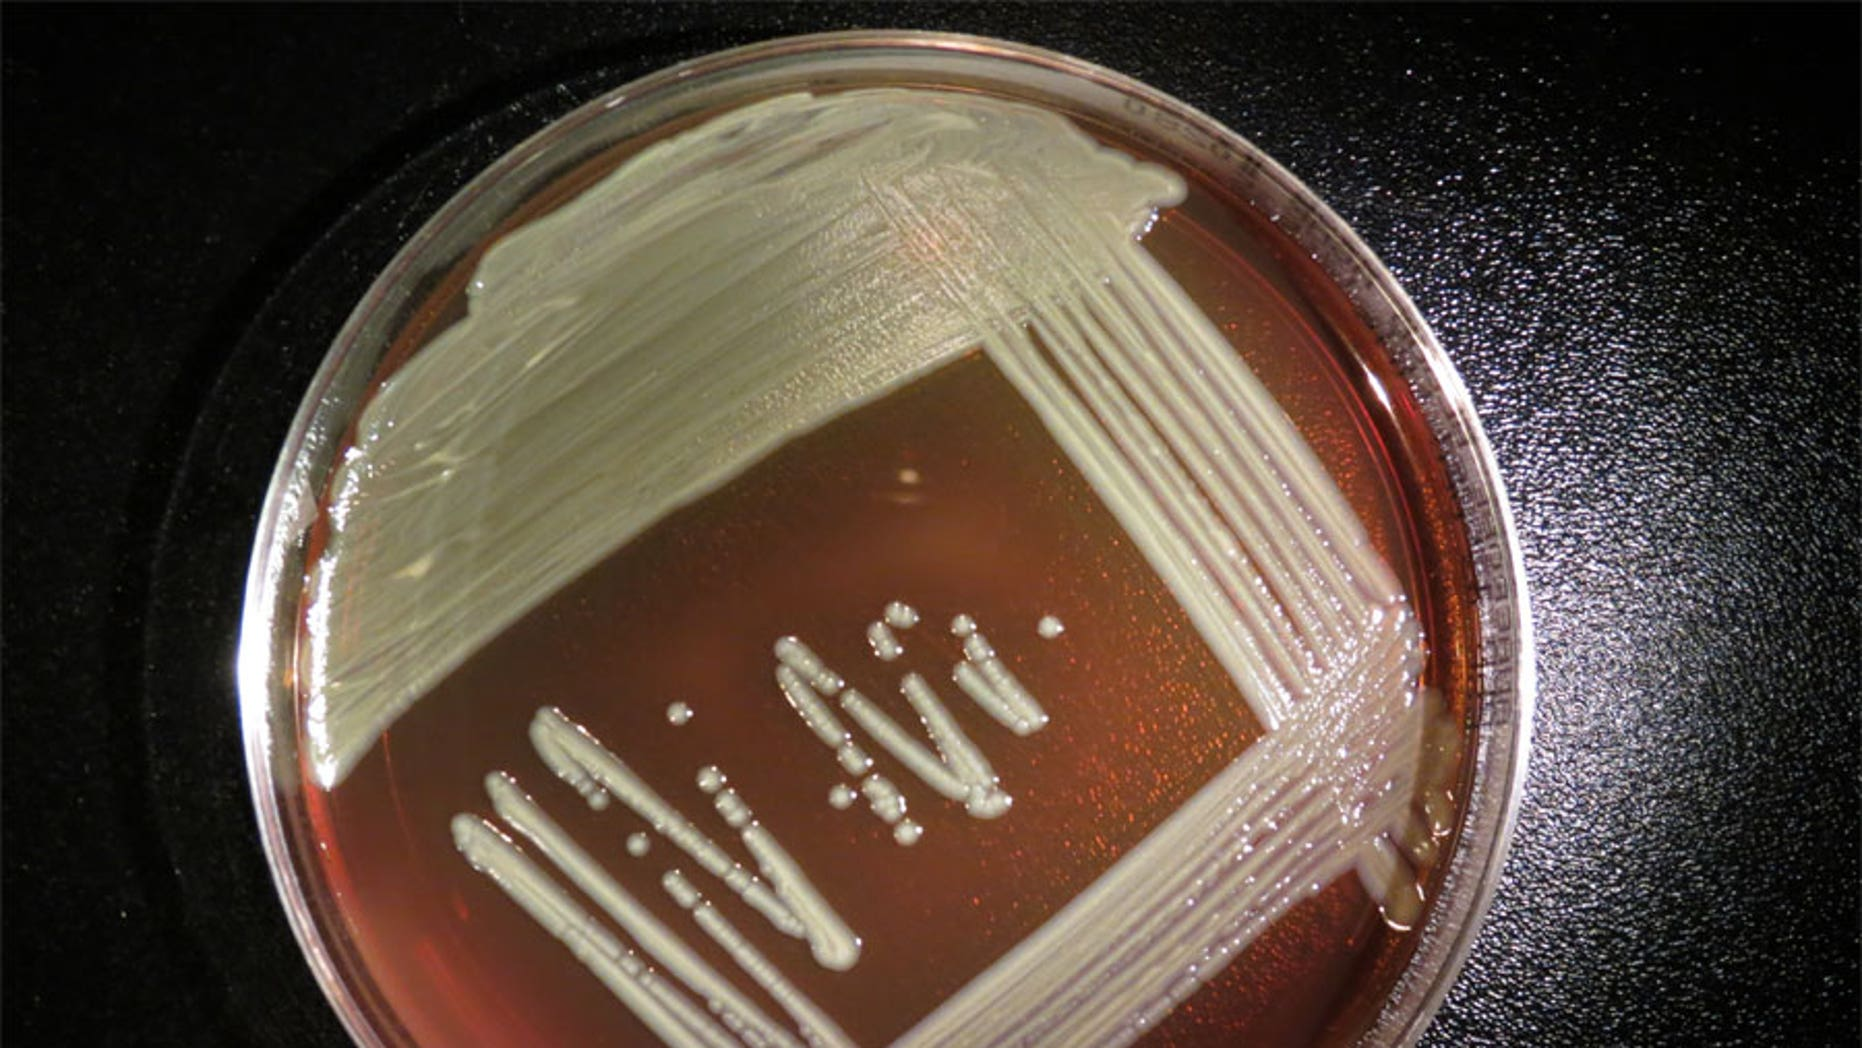 The bacteria Elizabethkingia anophelis growing in a lab dish